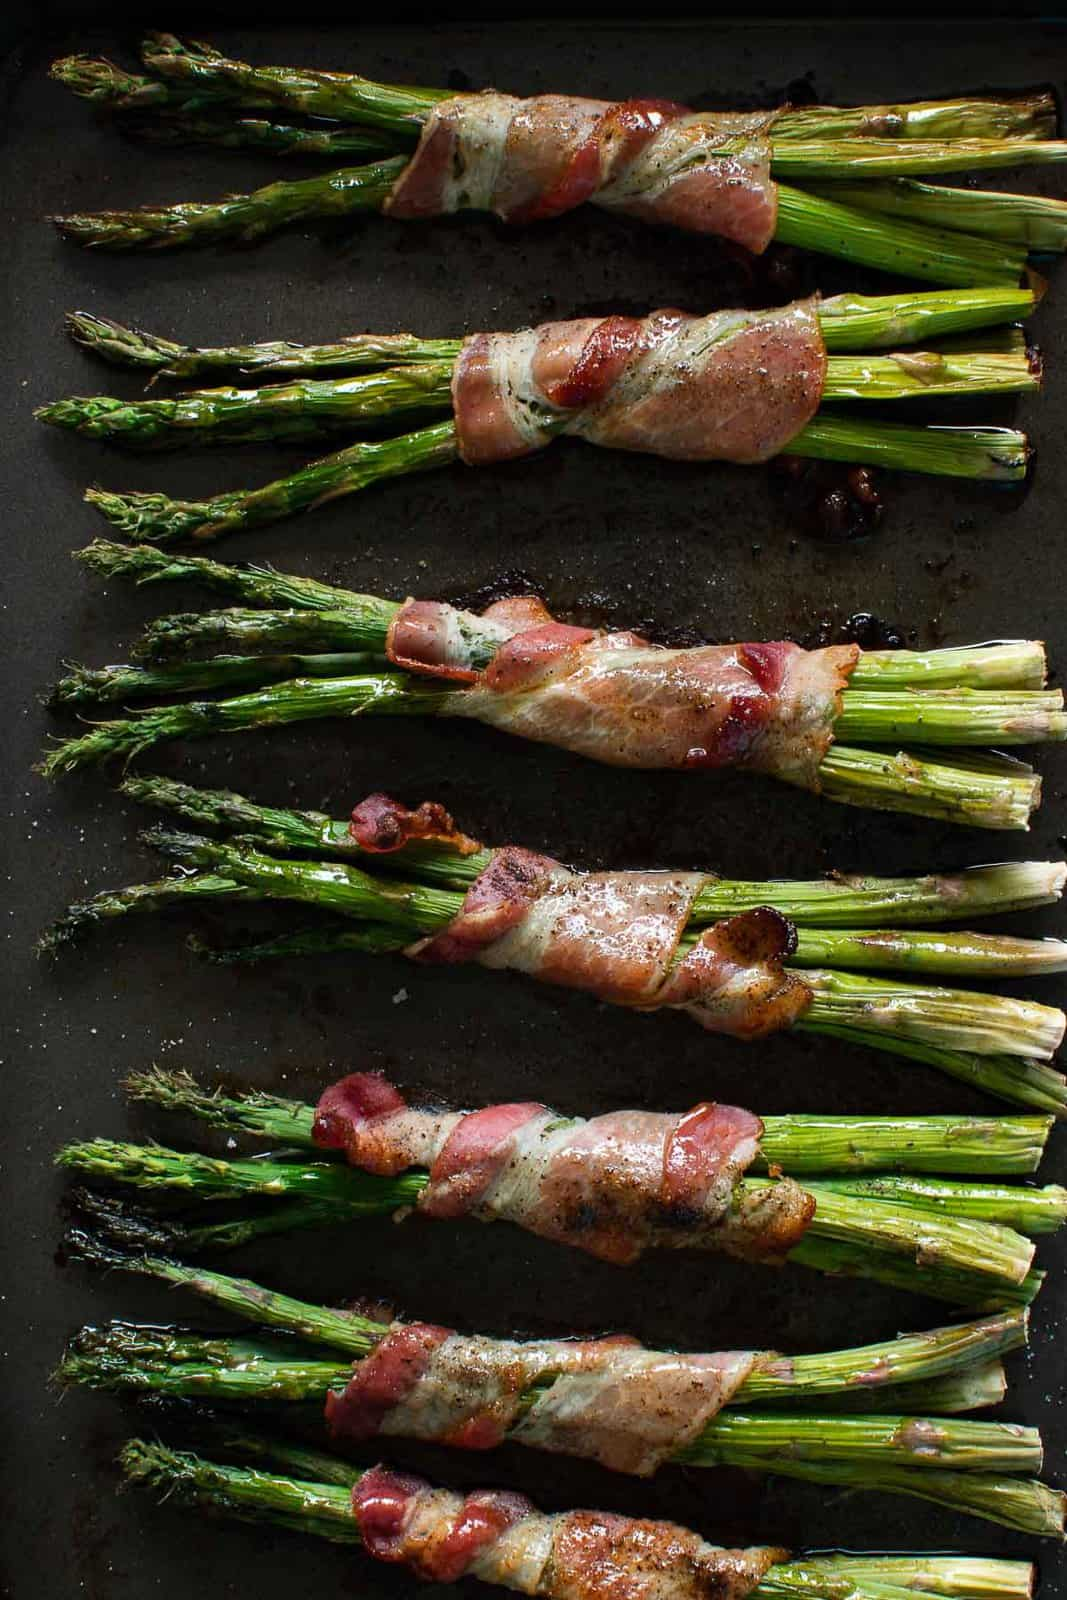 Oven baked bacon wrapped asparagus on a baking sheet.